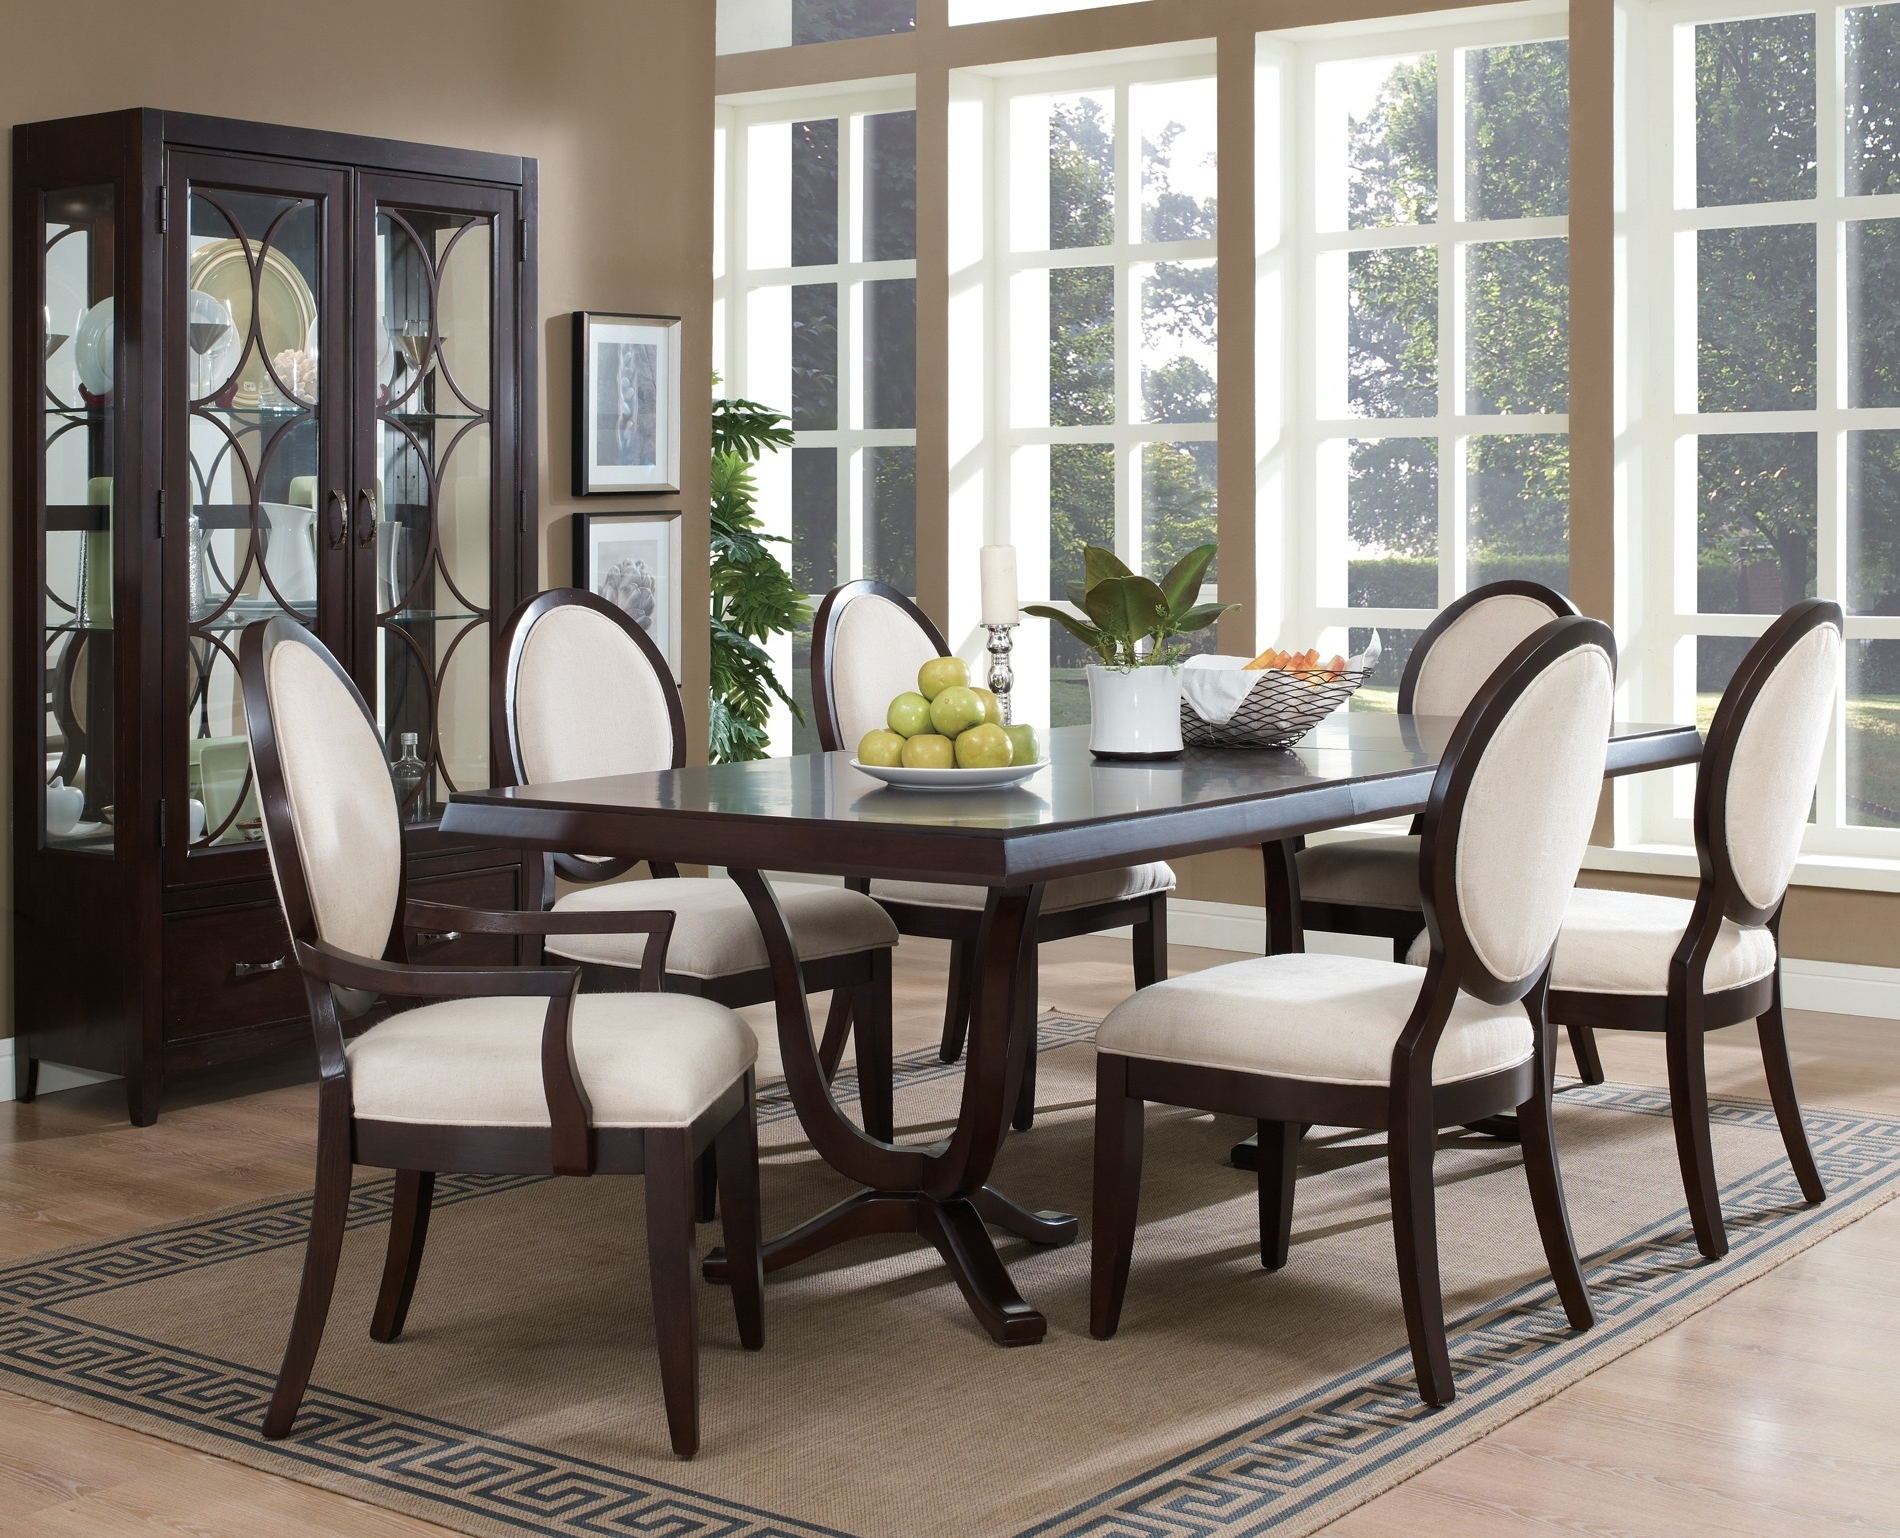 Latest Dining Table Chair Sets Intended For Beautiful Dining Room Set Ideal Dining Room Table And Chair Sets (View 17 of 25)